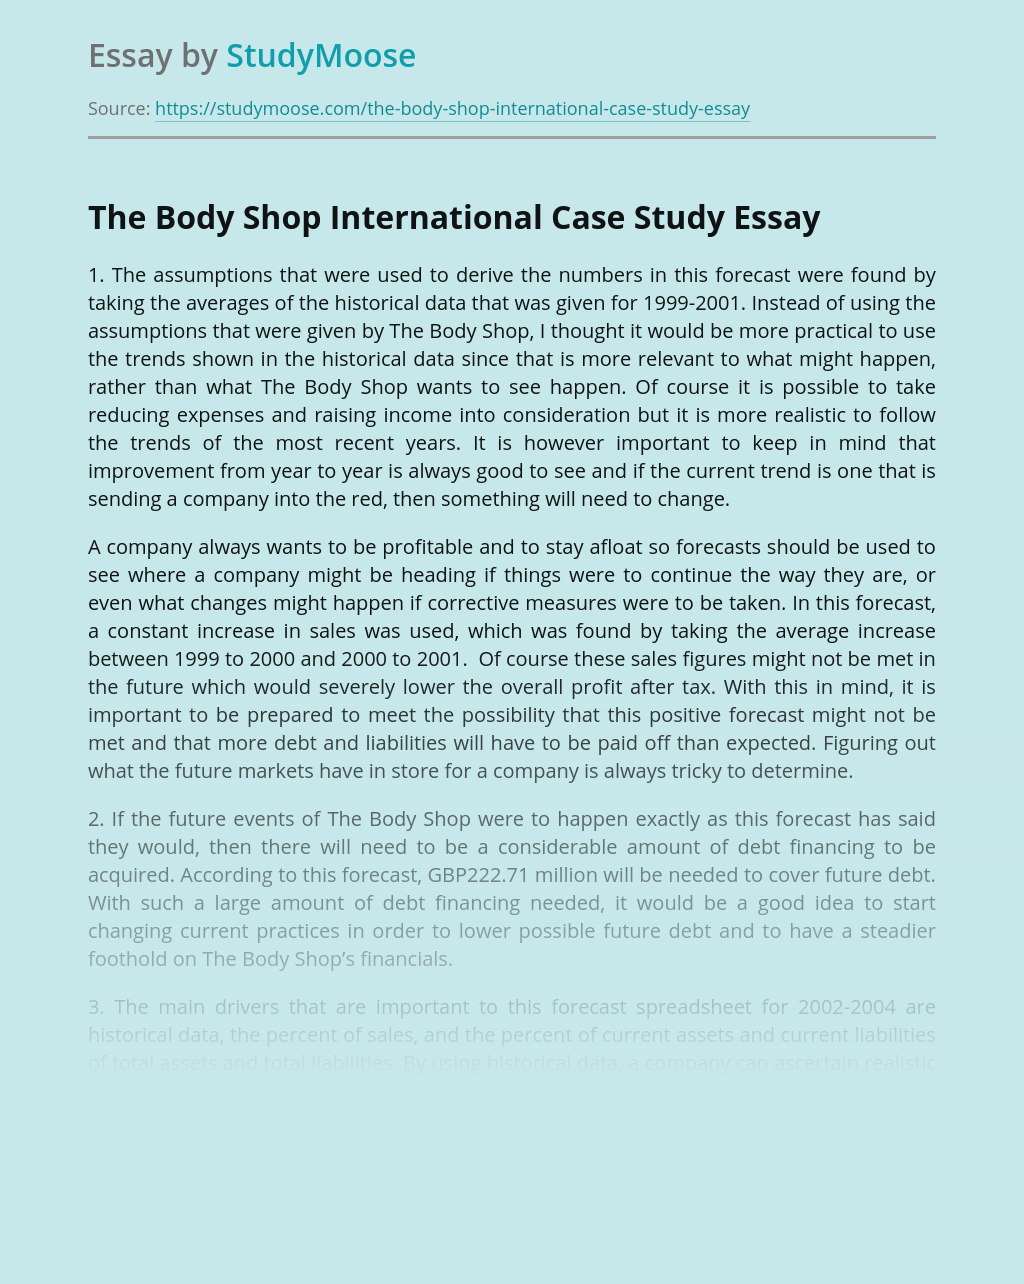 The Body Shop International Case Study